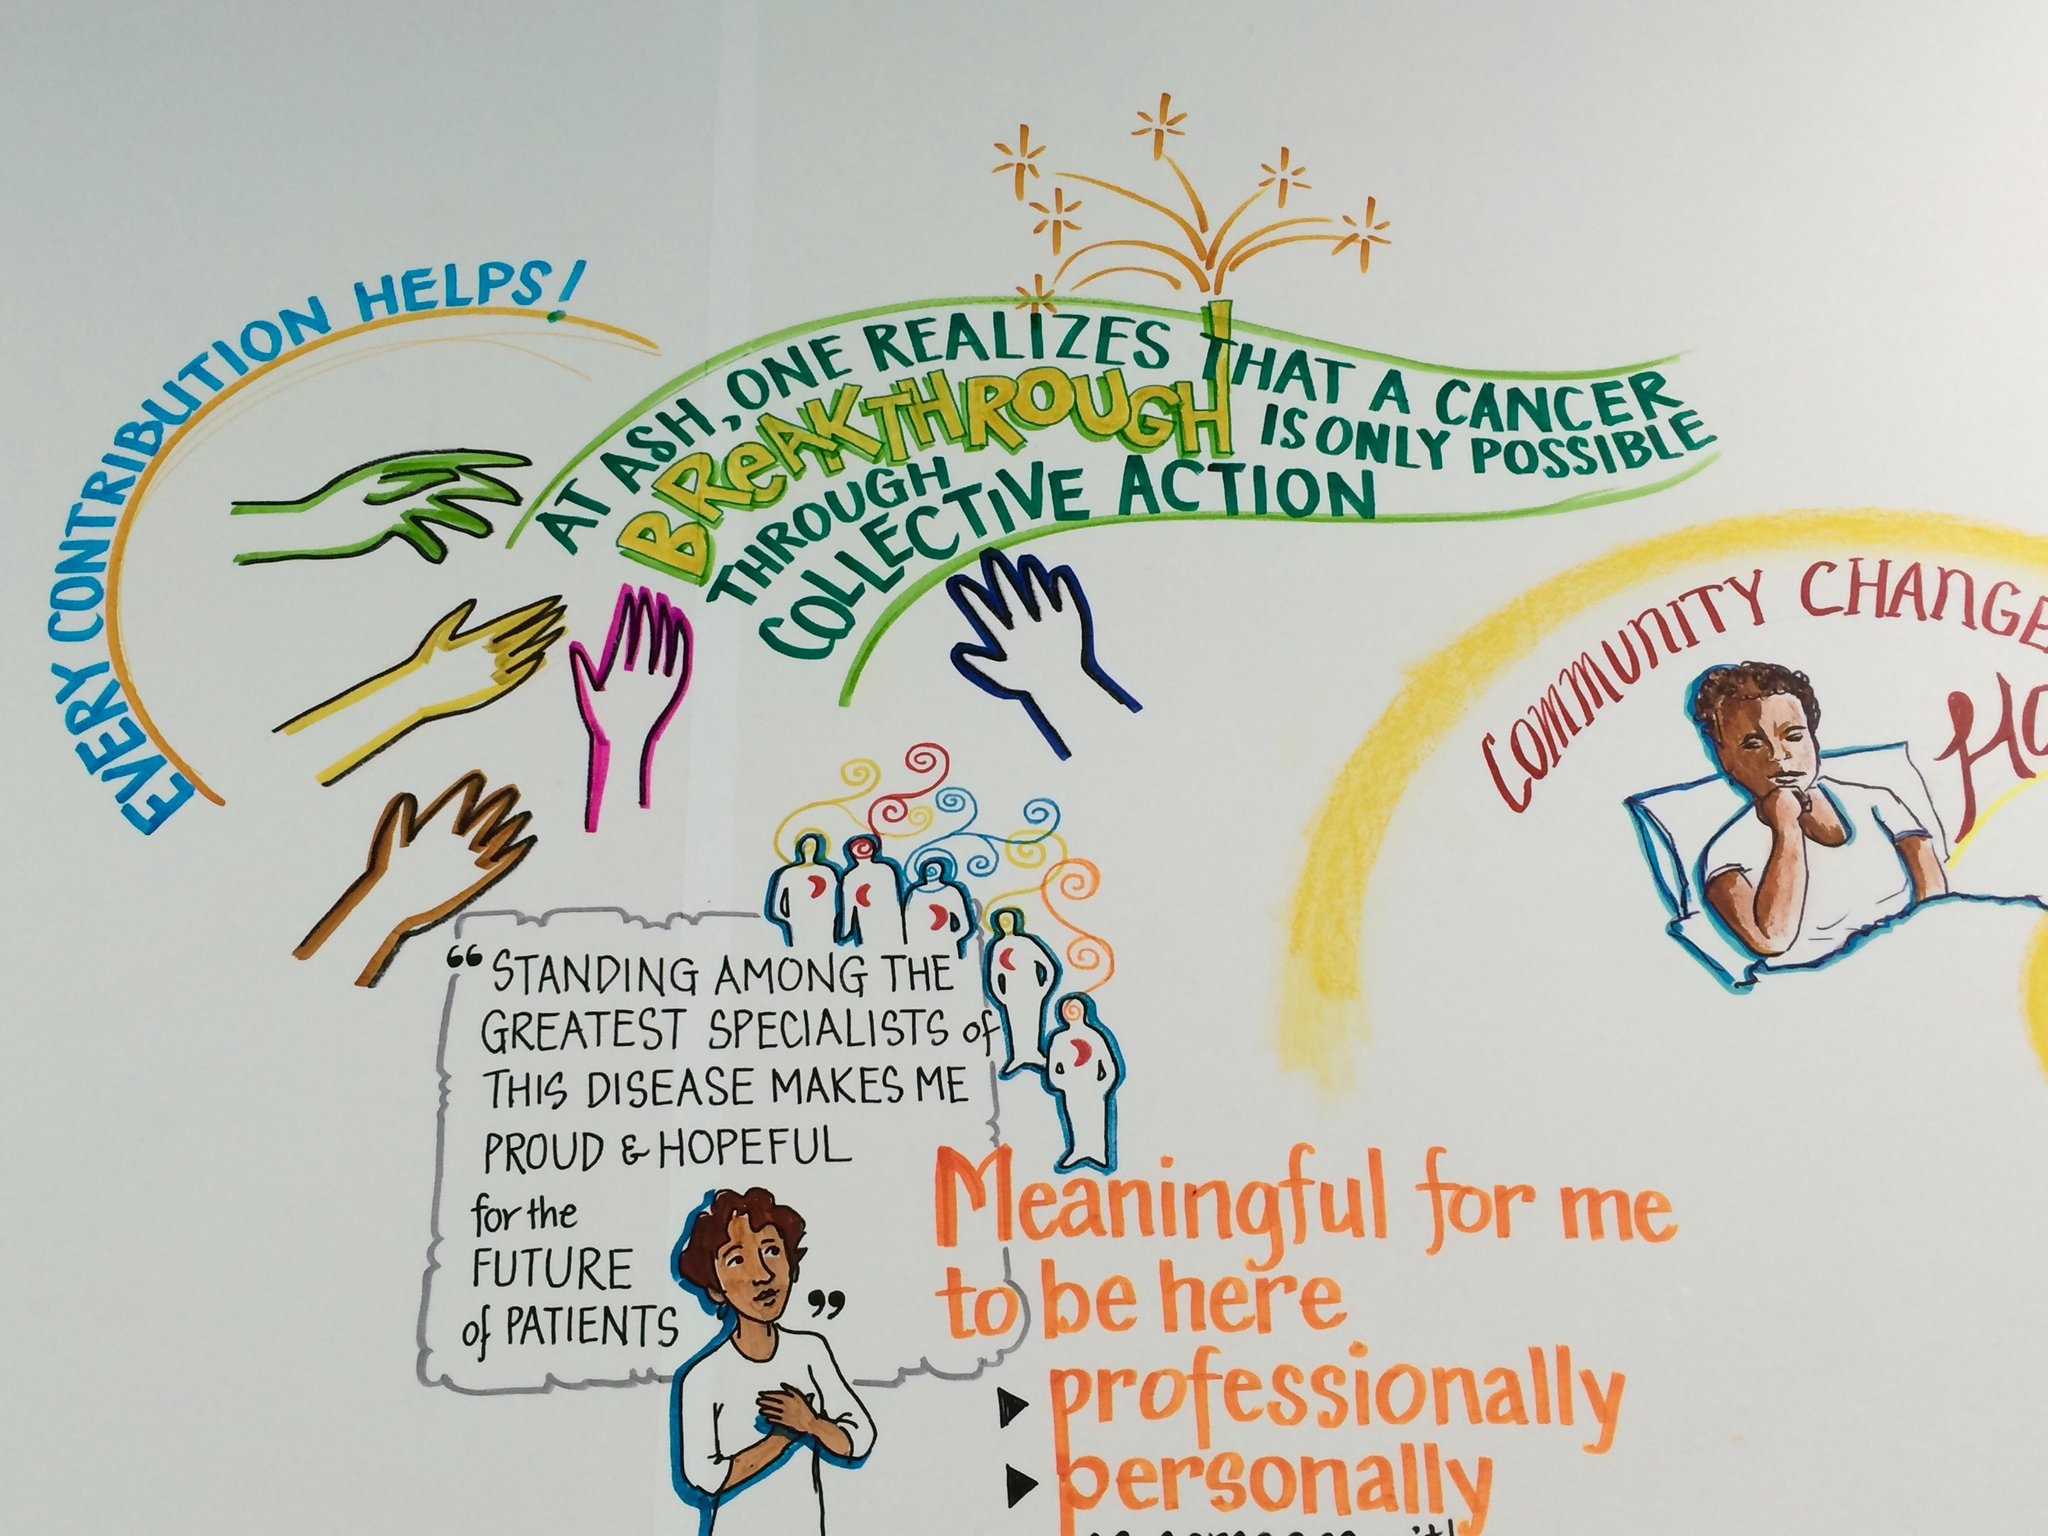 The illustrated impact of #ASH16. Our take: collective contributions are what lead to a #CancerBreakthrough https://t.co/MQkoxW4RiD